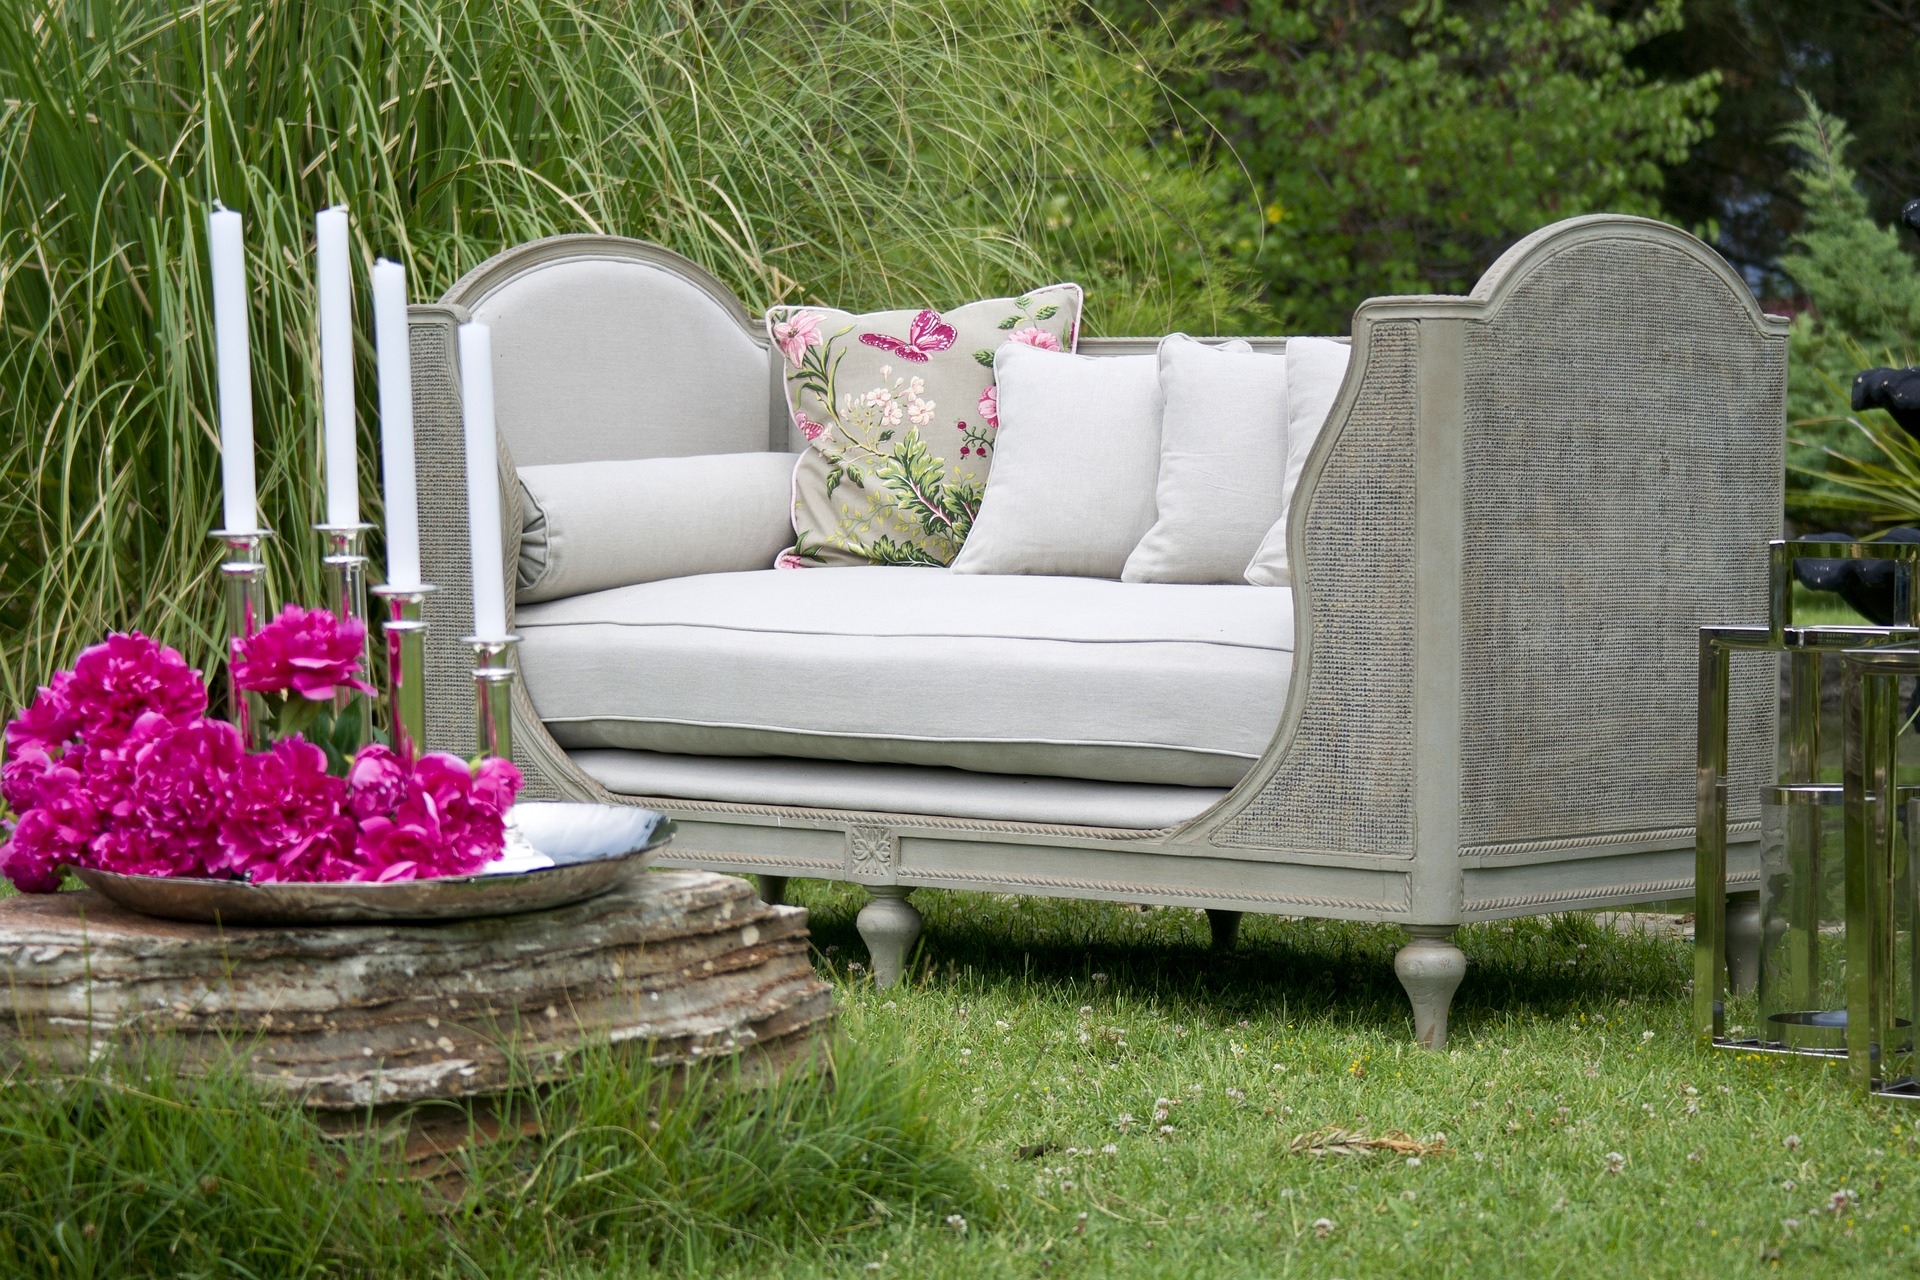 garden furniture for your outdoor space